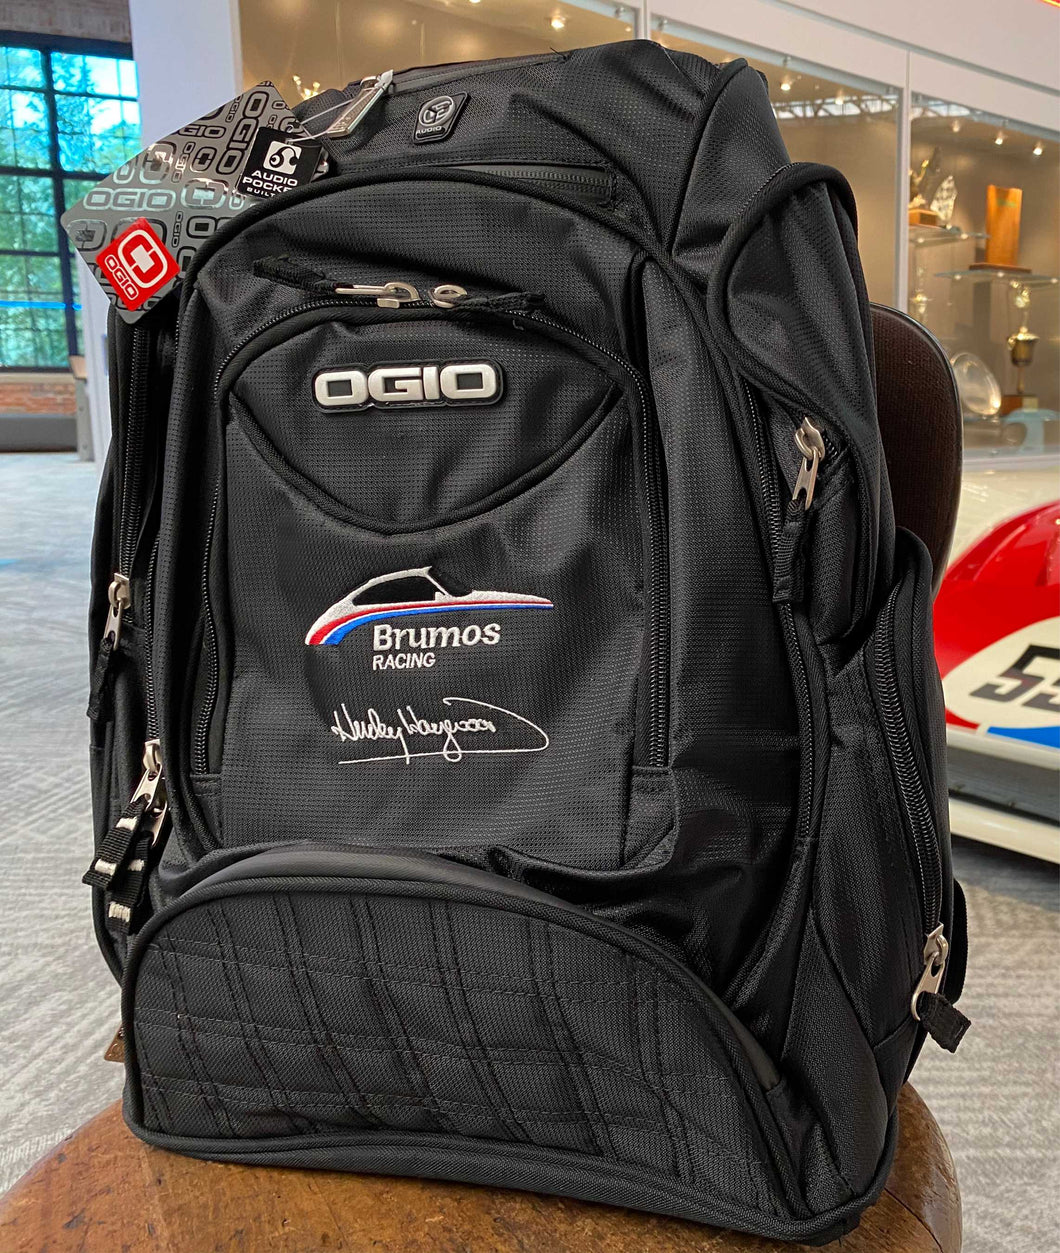 Brumos Racing Backpack